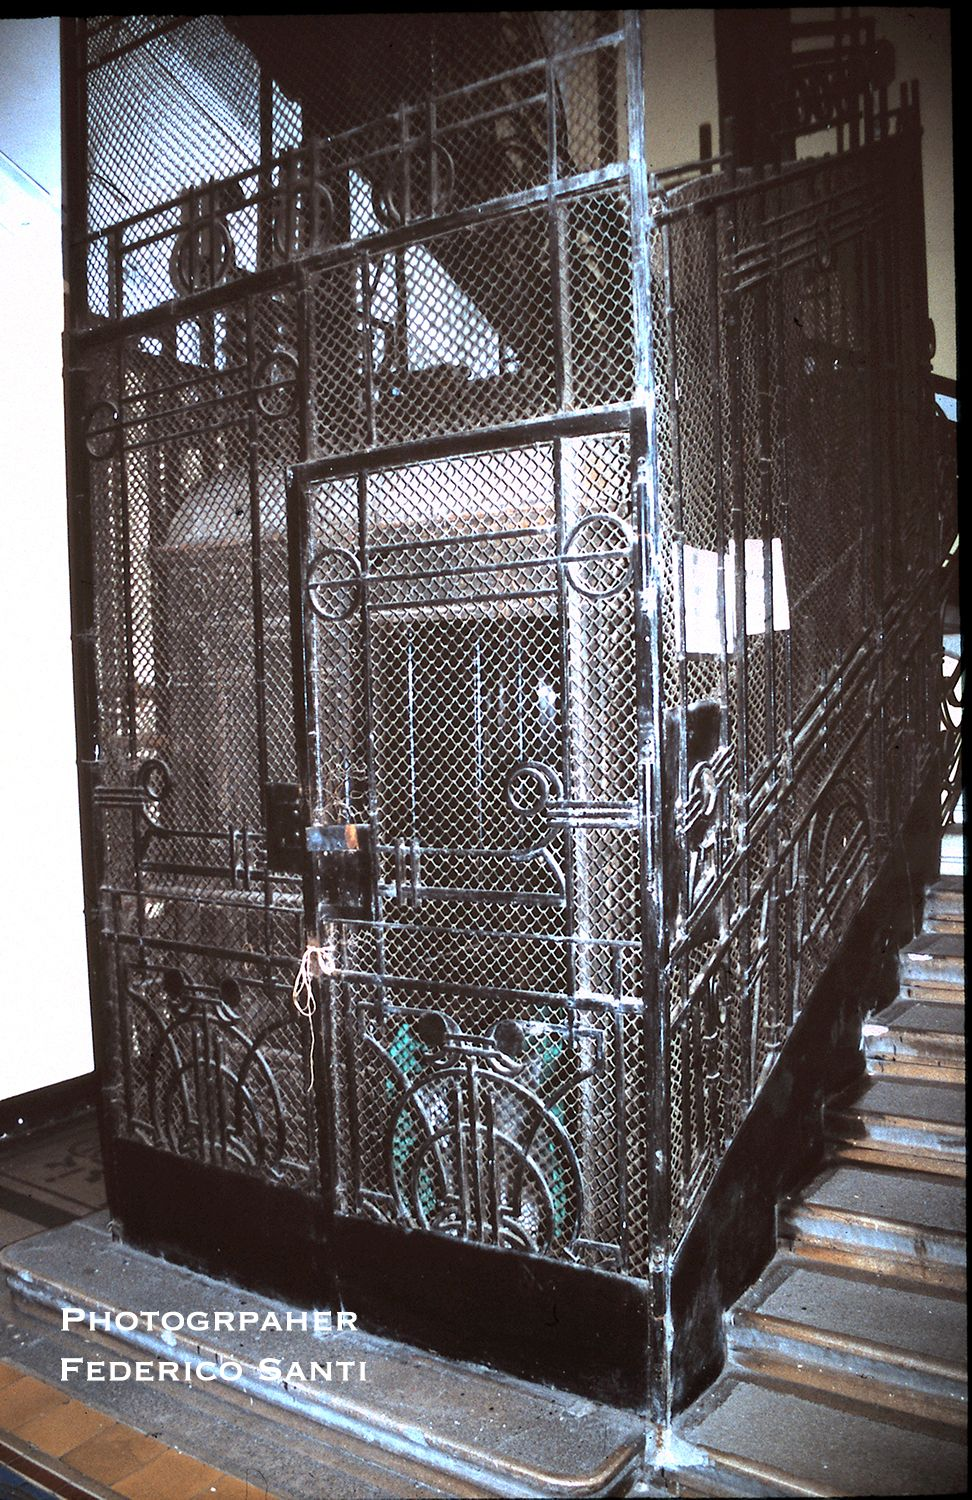 Elevator 'cage' surround from a Budapest Hungary apartment building. Circa 1900